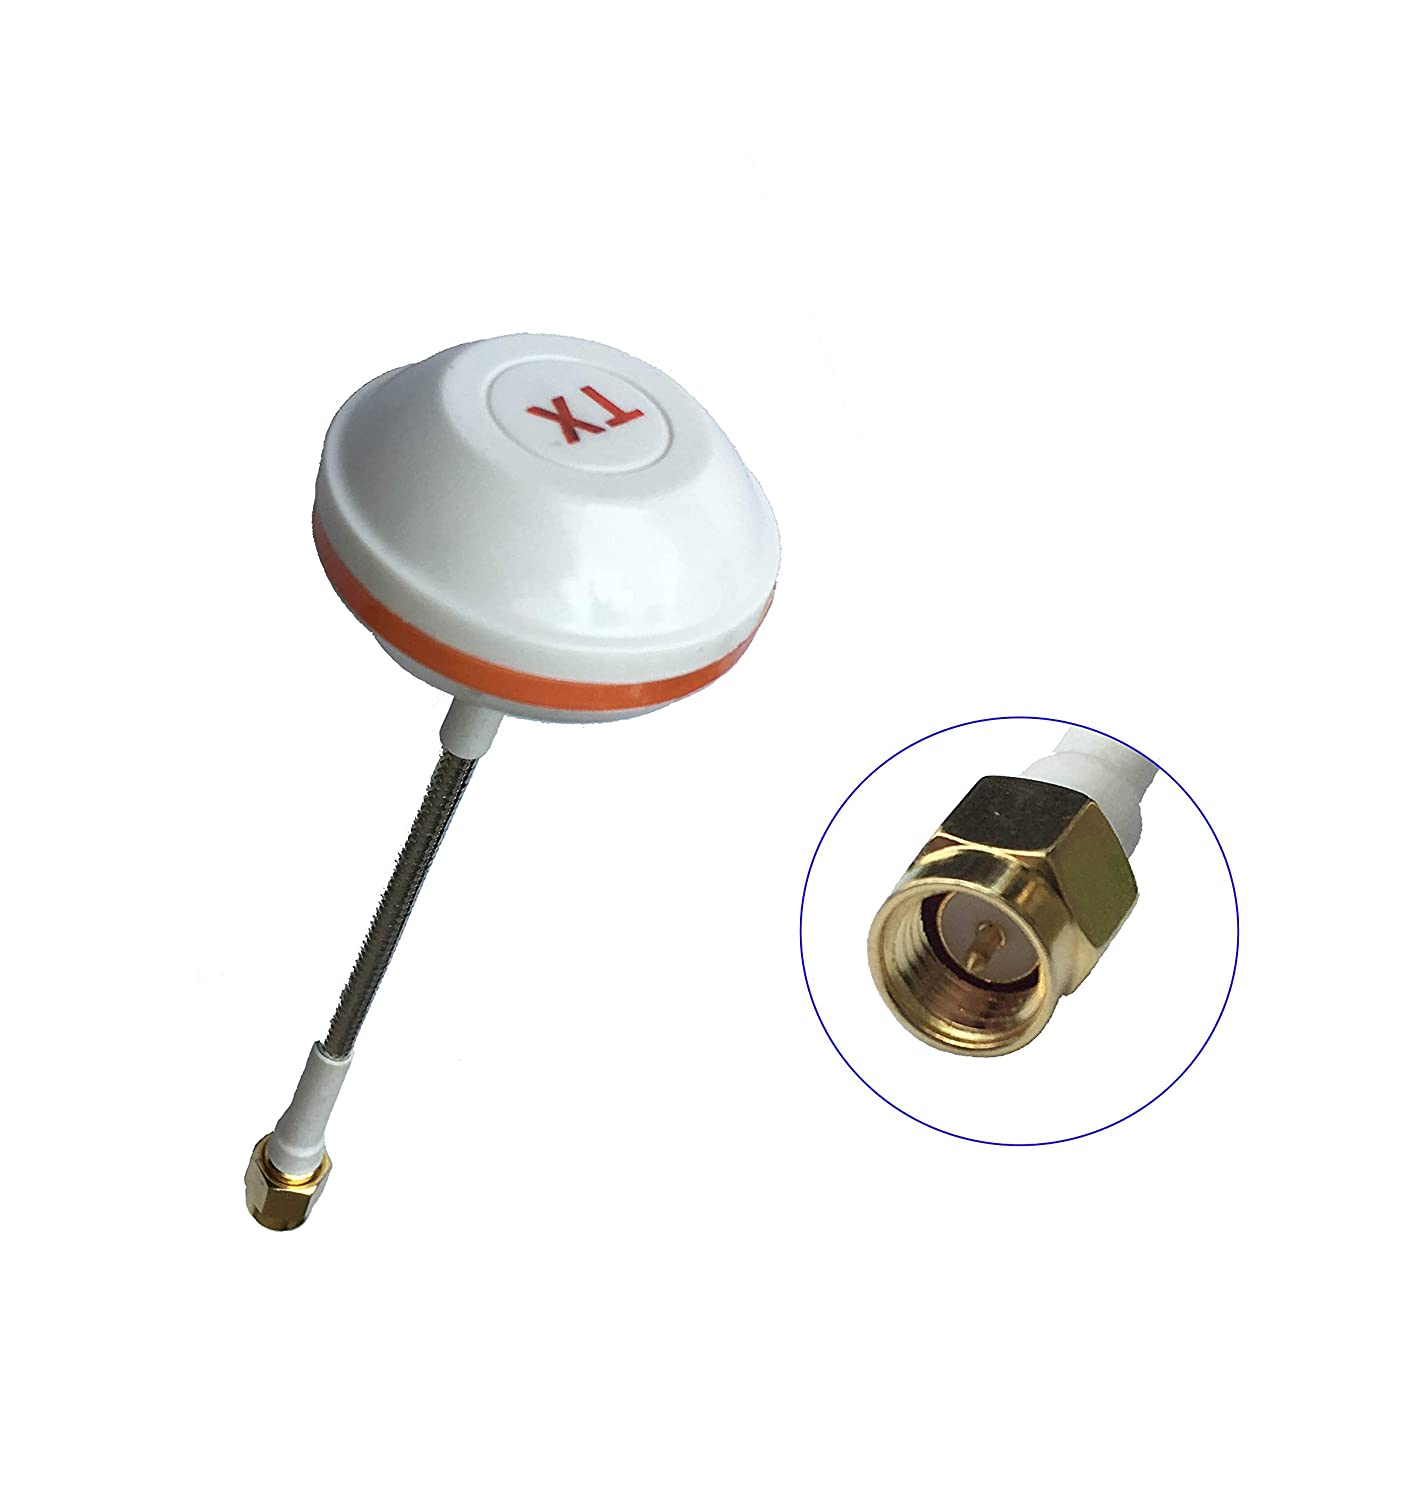 Beyondoor 5.8GHz FPV Antenna,Clover Leaf Antenna Circular Polarized with SMA Straight Male for Transmit 5GHz Signal